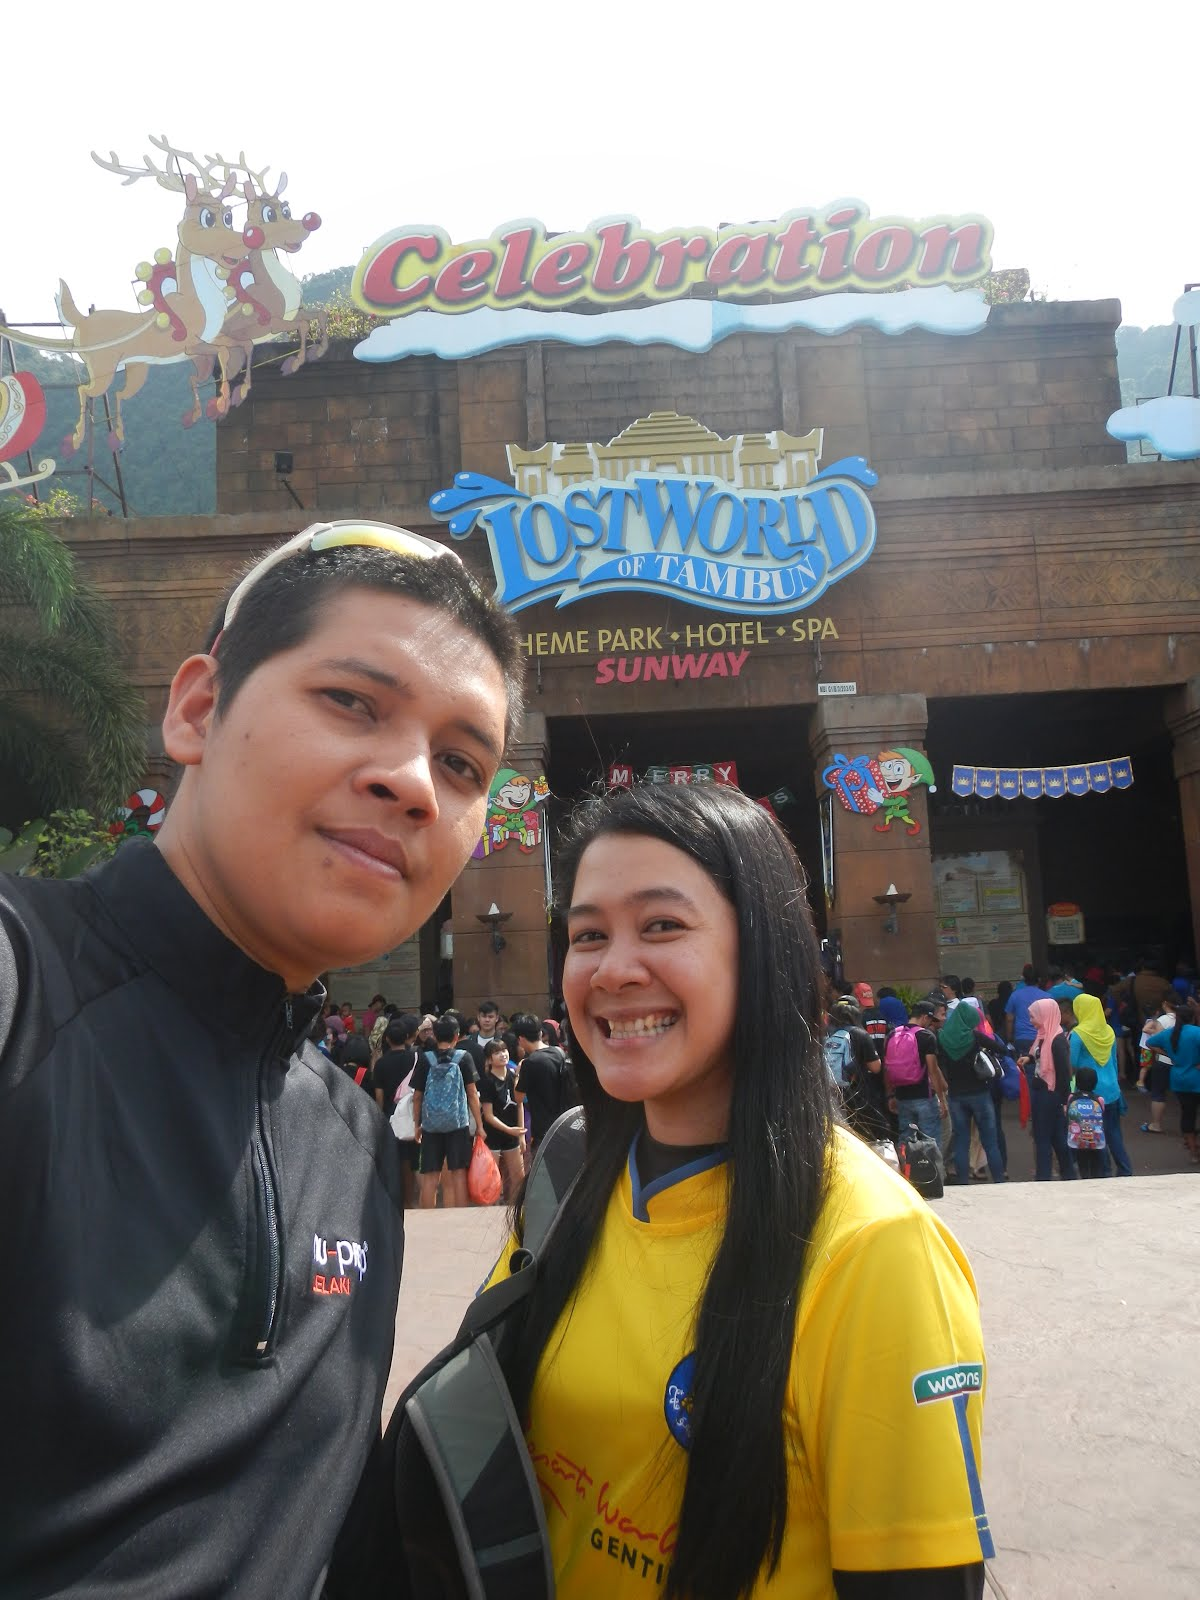 Lost World of Tambun 2015